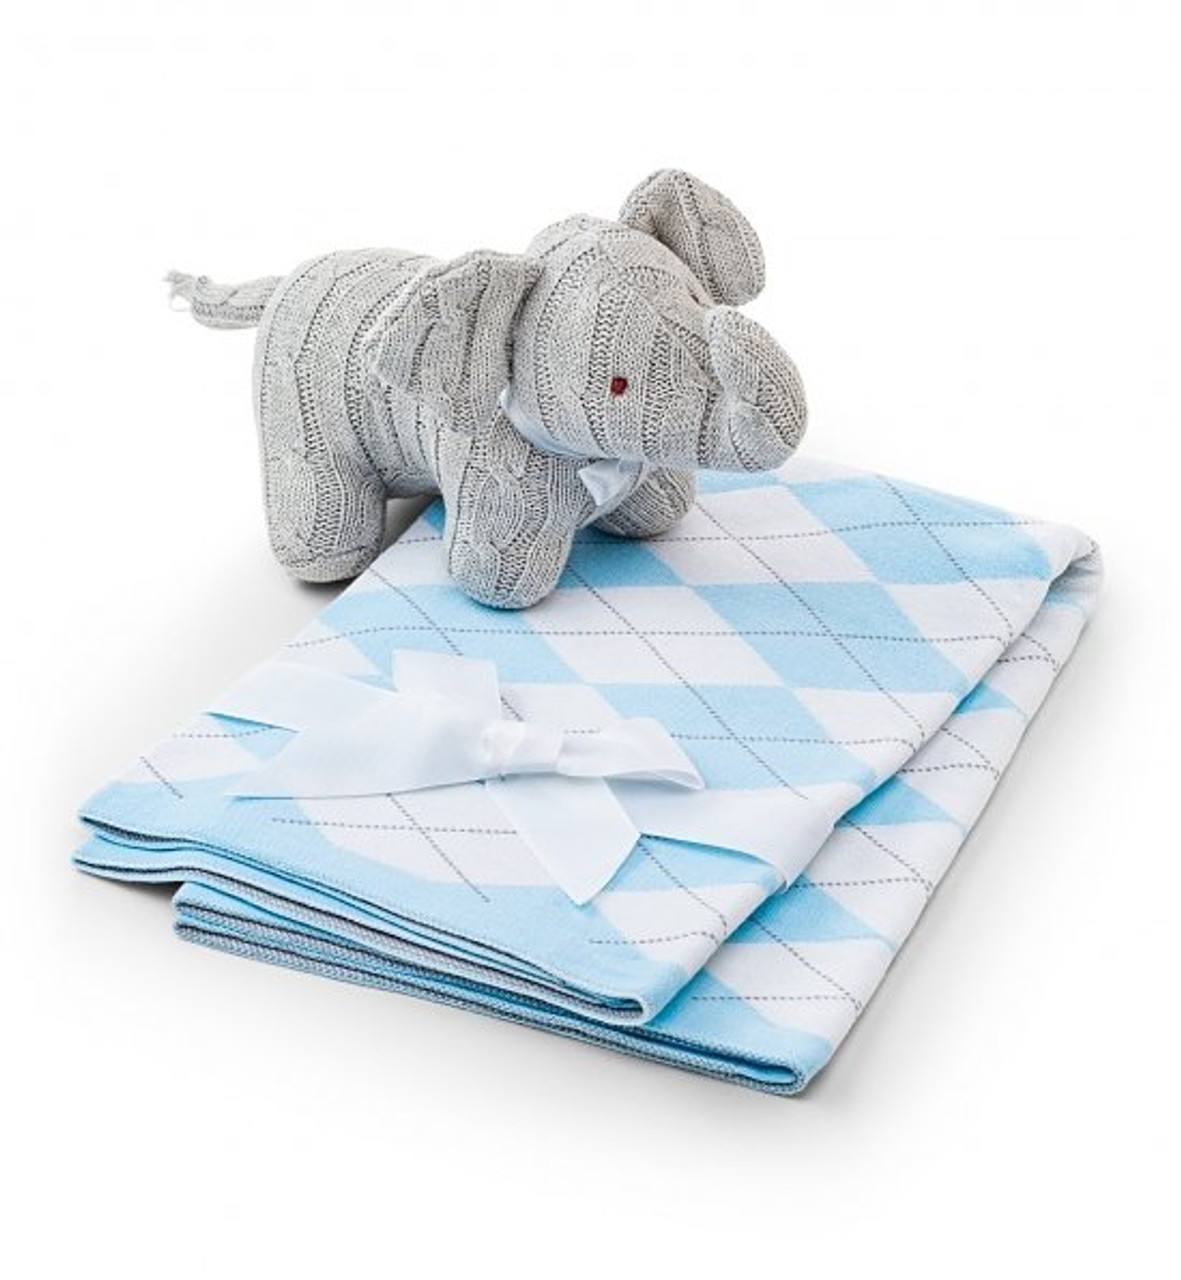 Soft elephant and argyle baby blanket set twanas creation make nap time blissful for every new baby with this plush cable knit elephant and negle Images